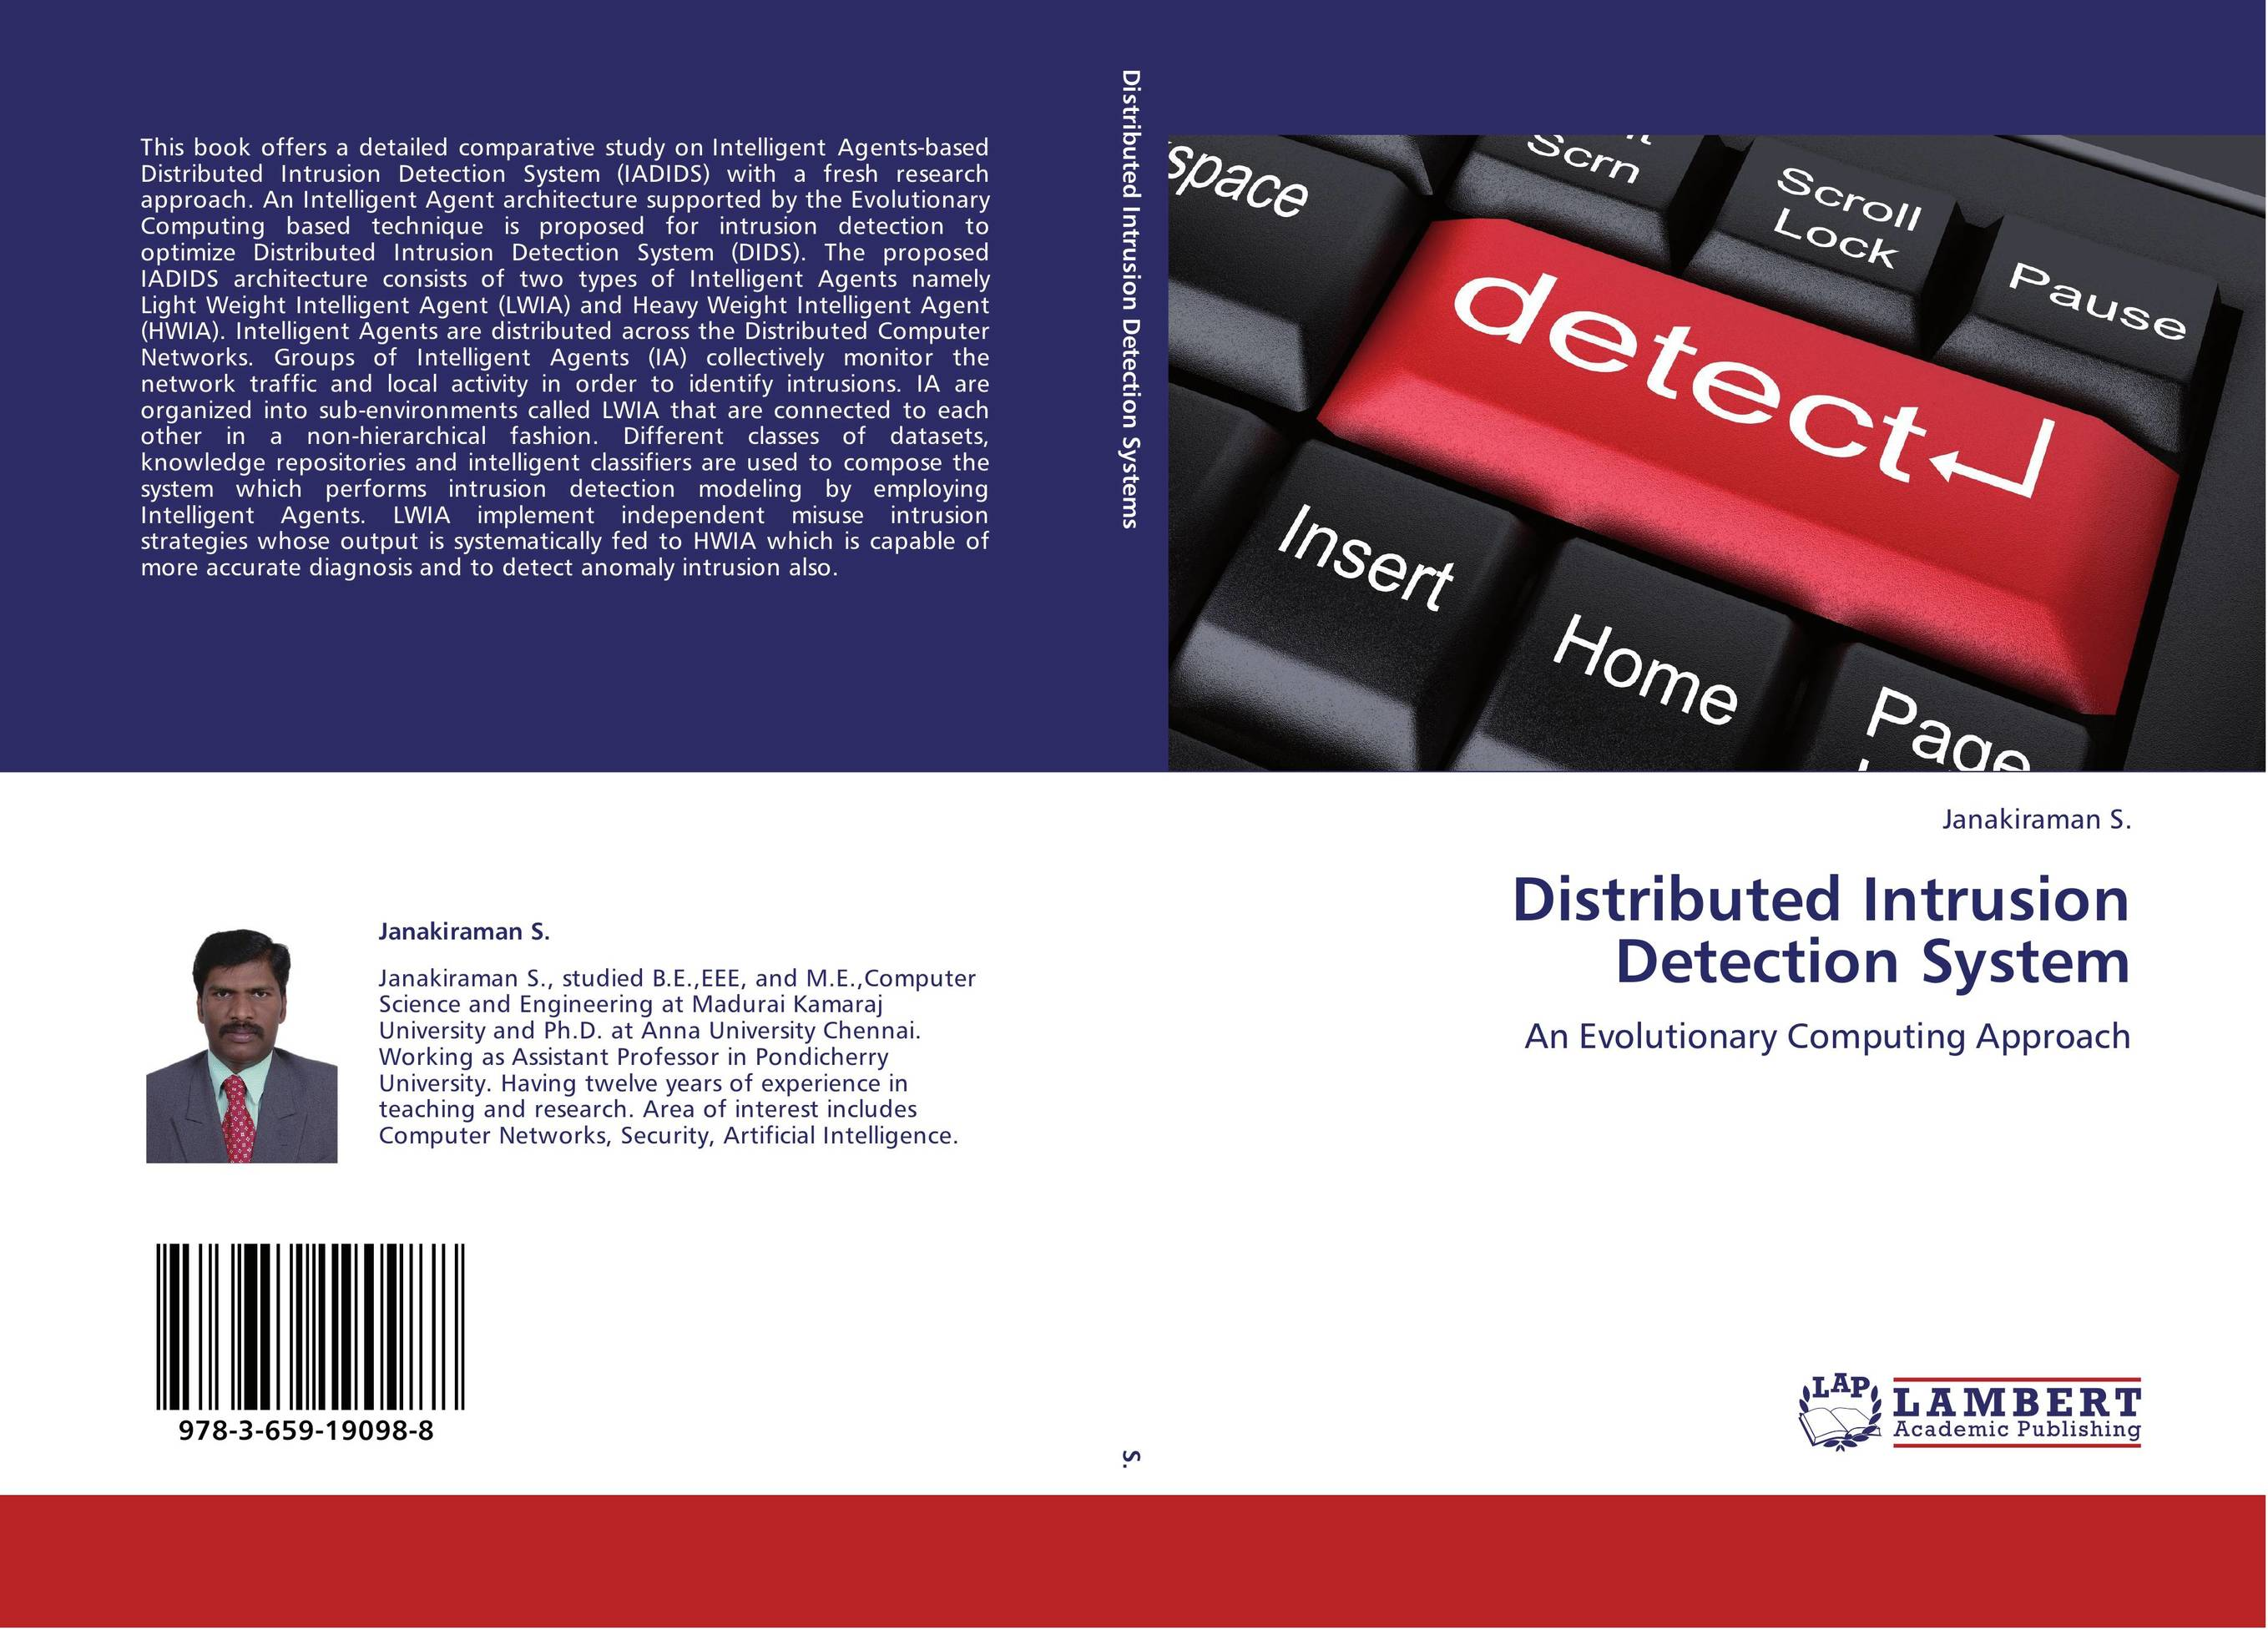 comparative study of intrusion detection system Now a day's, intrusion detection is a very important research area in network security machine learning techniques have been applied to the field of intrusion detection.